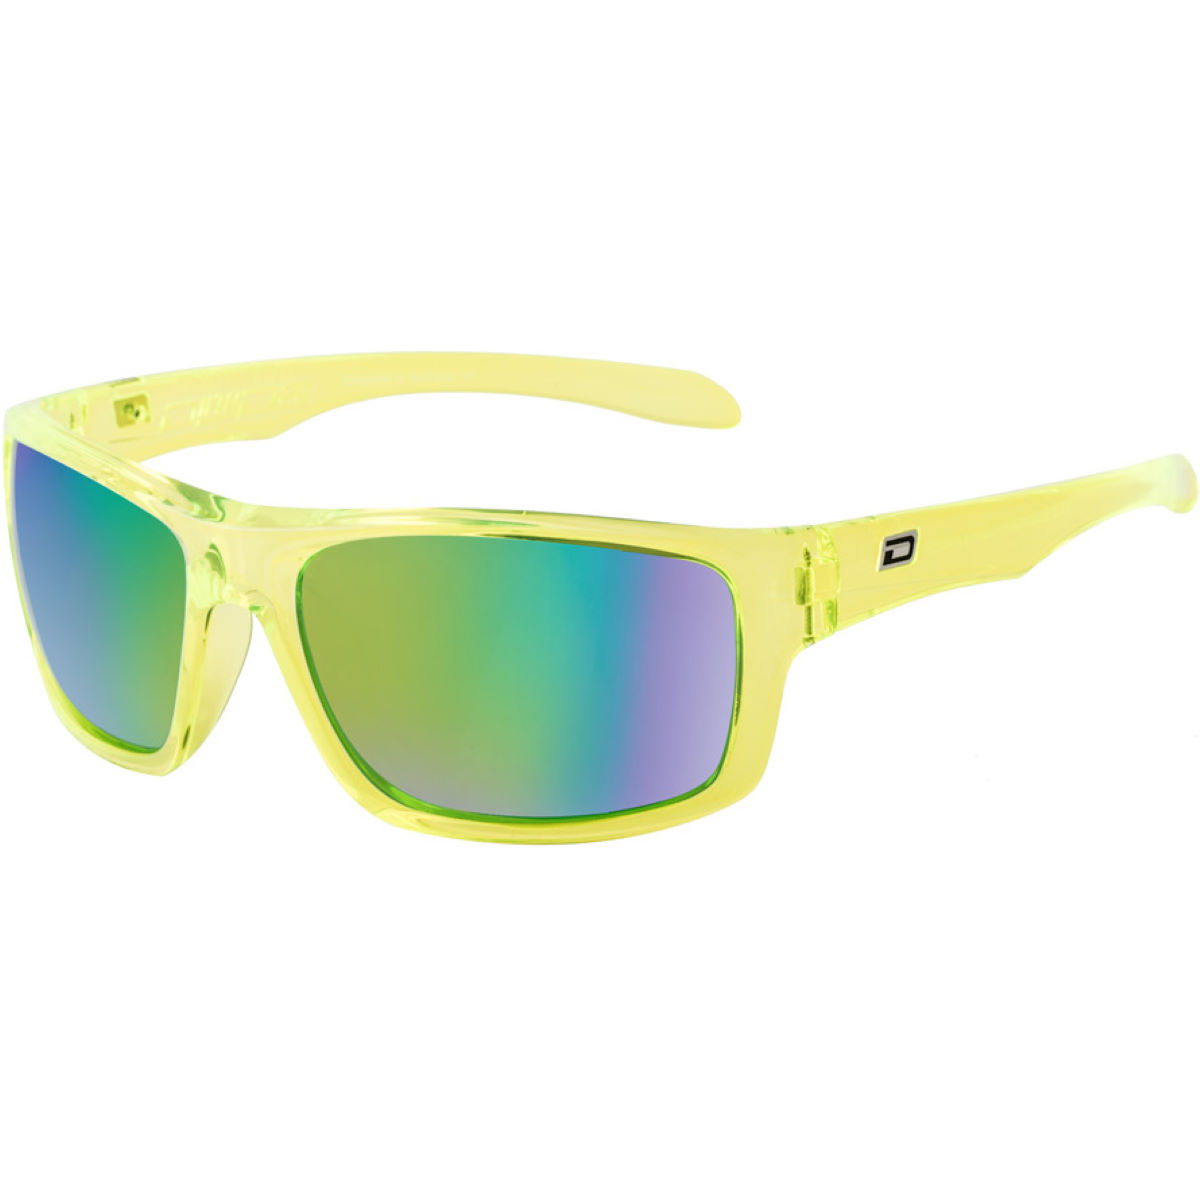 Dirty Dog Axle Sunglasses - Gafas de sol